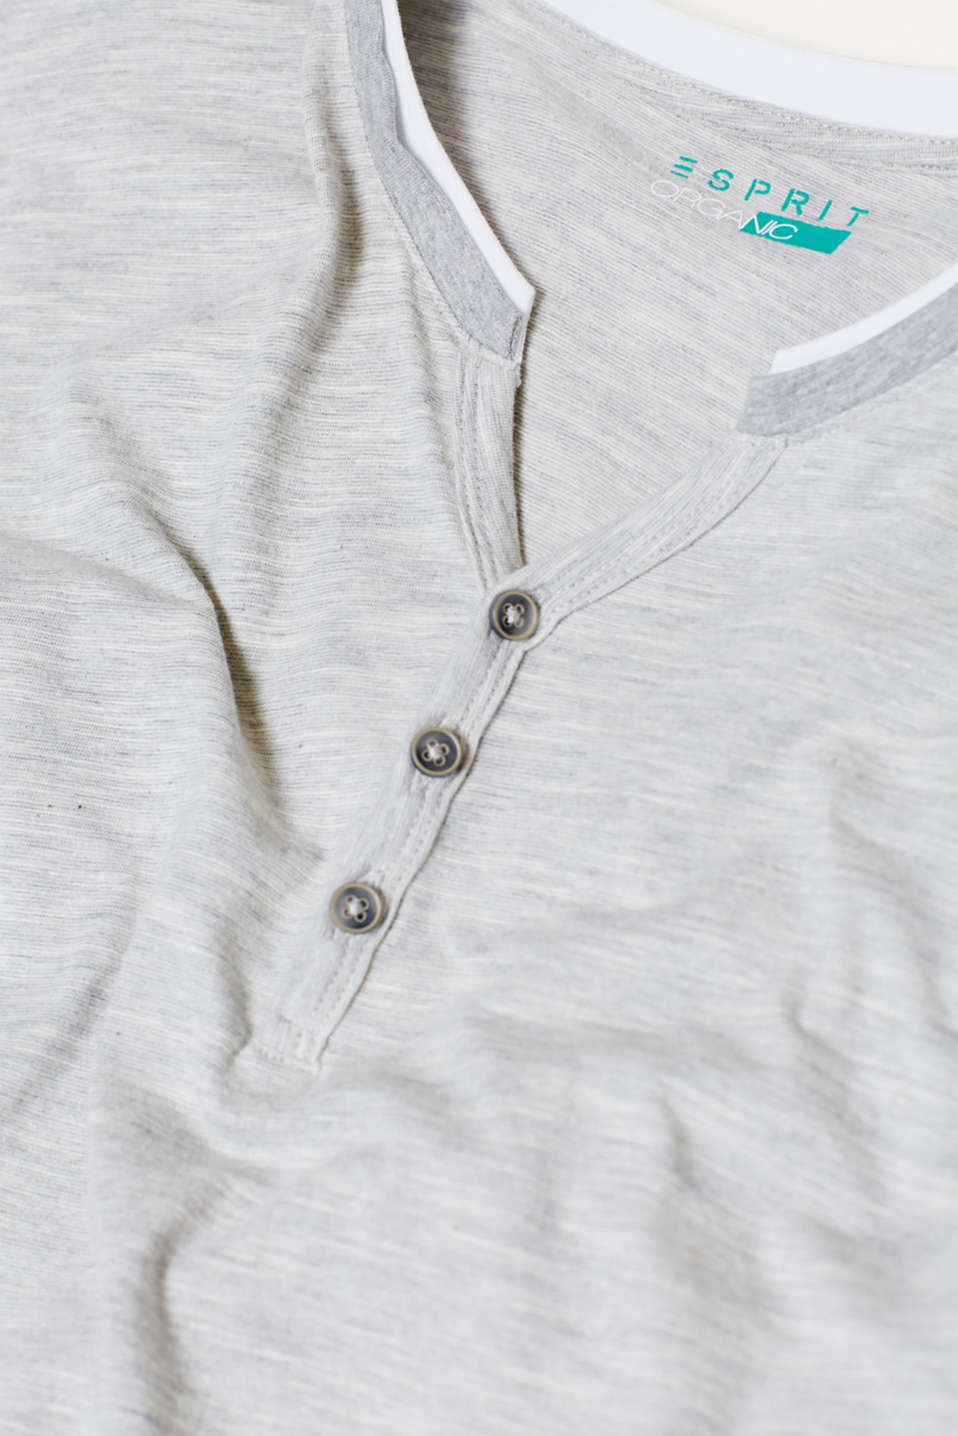 Layer-Shirt aus Jersey, mit Organic Cotton